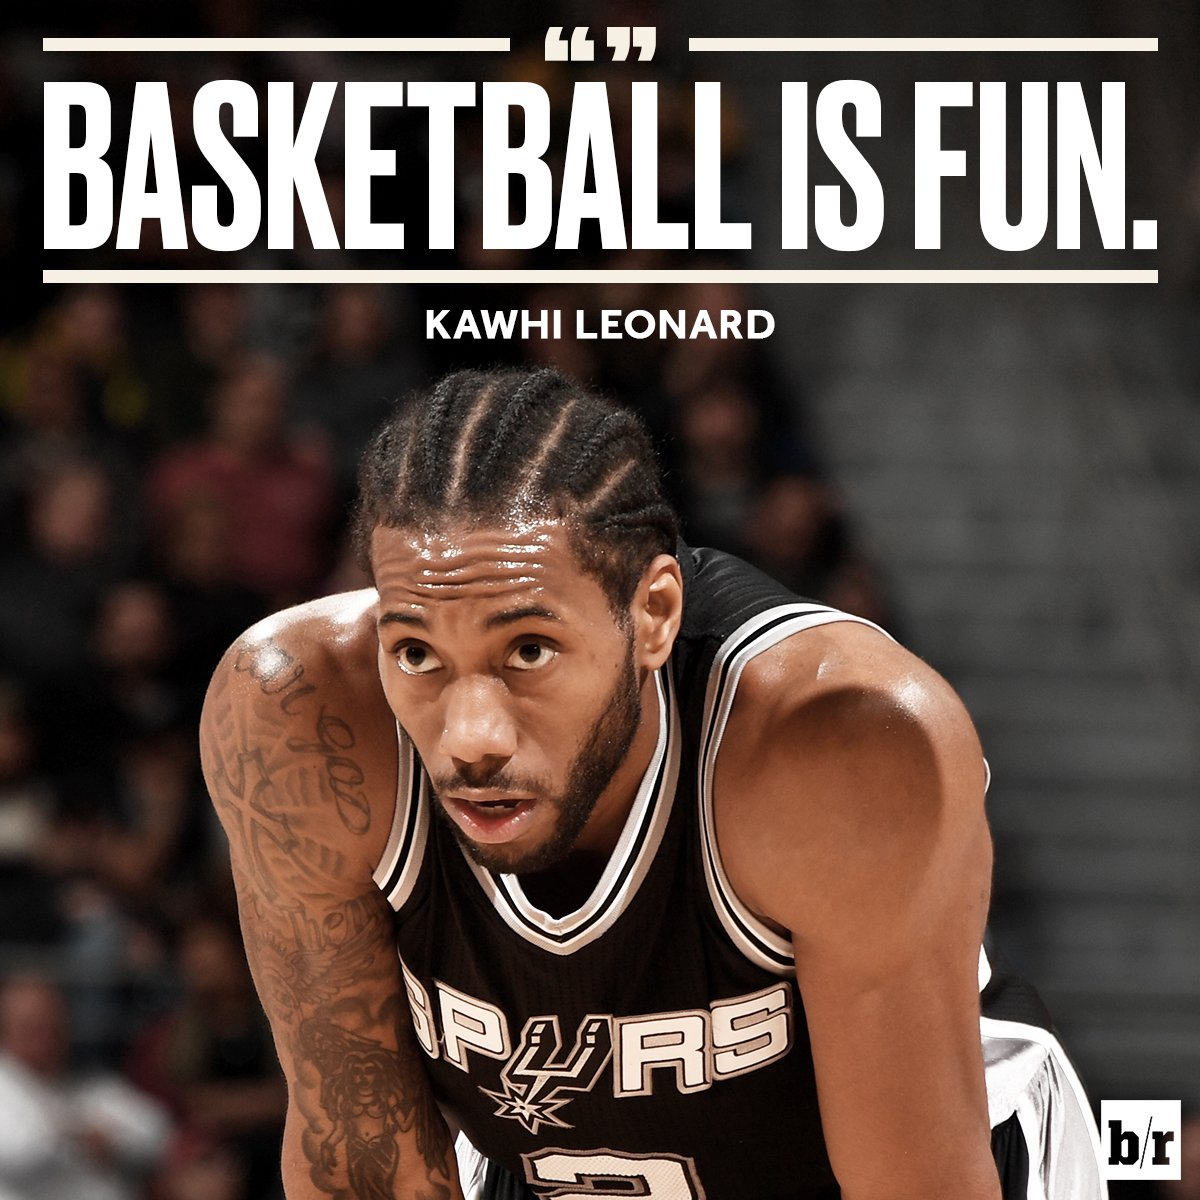 The most Kawhi quote ever.